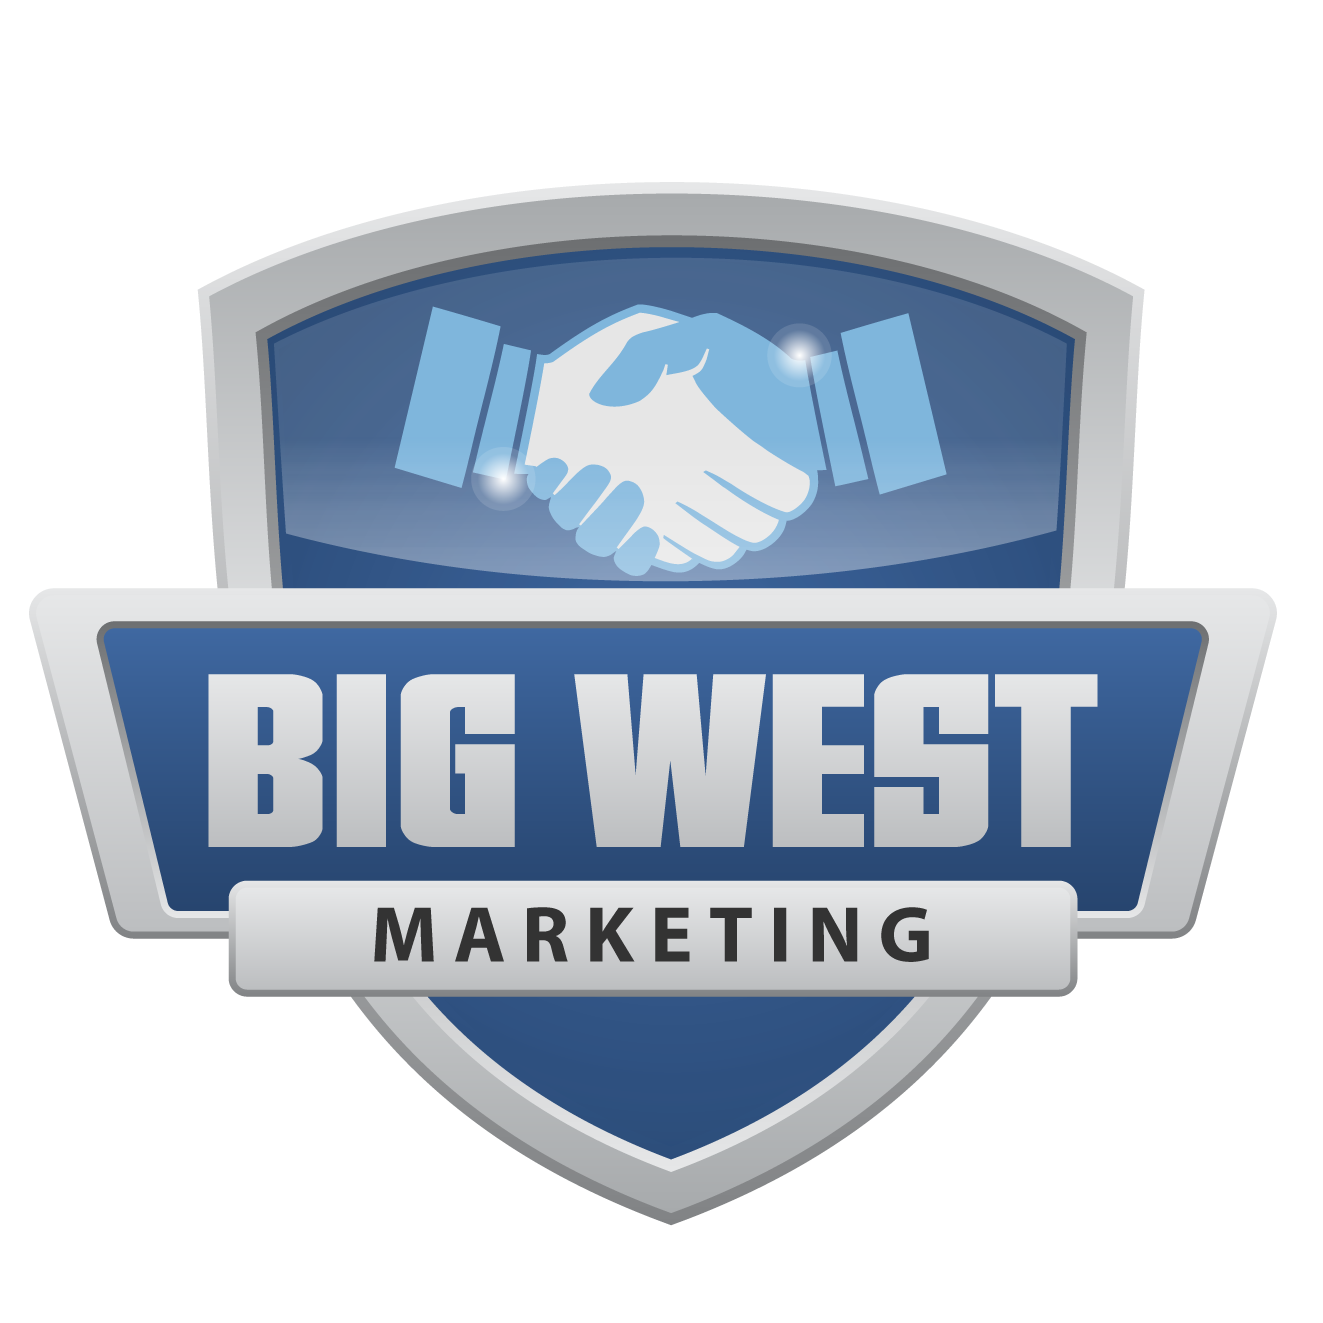 Big West Marketing, Inc.